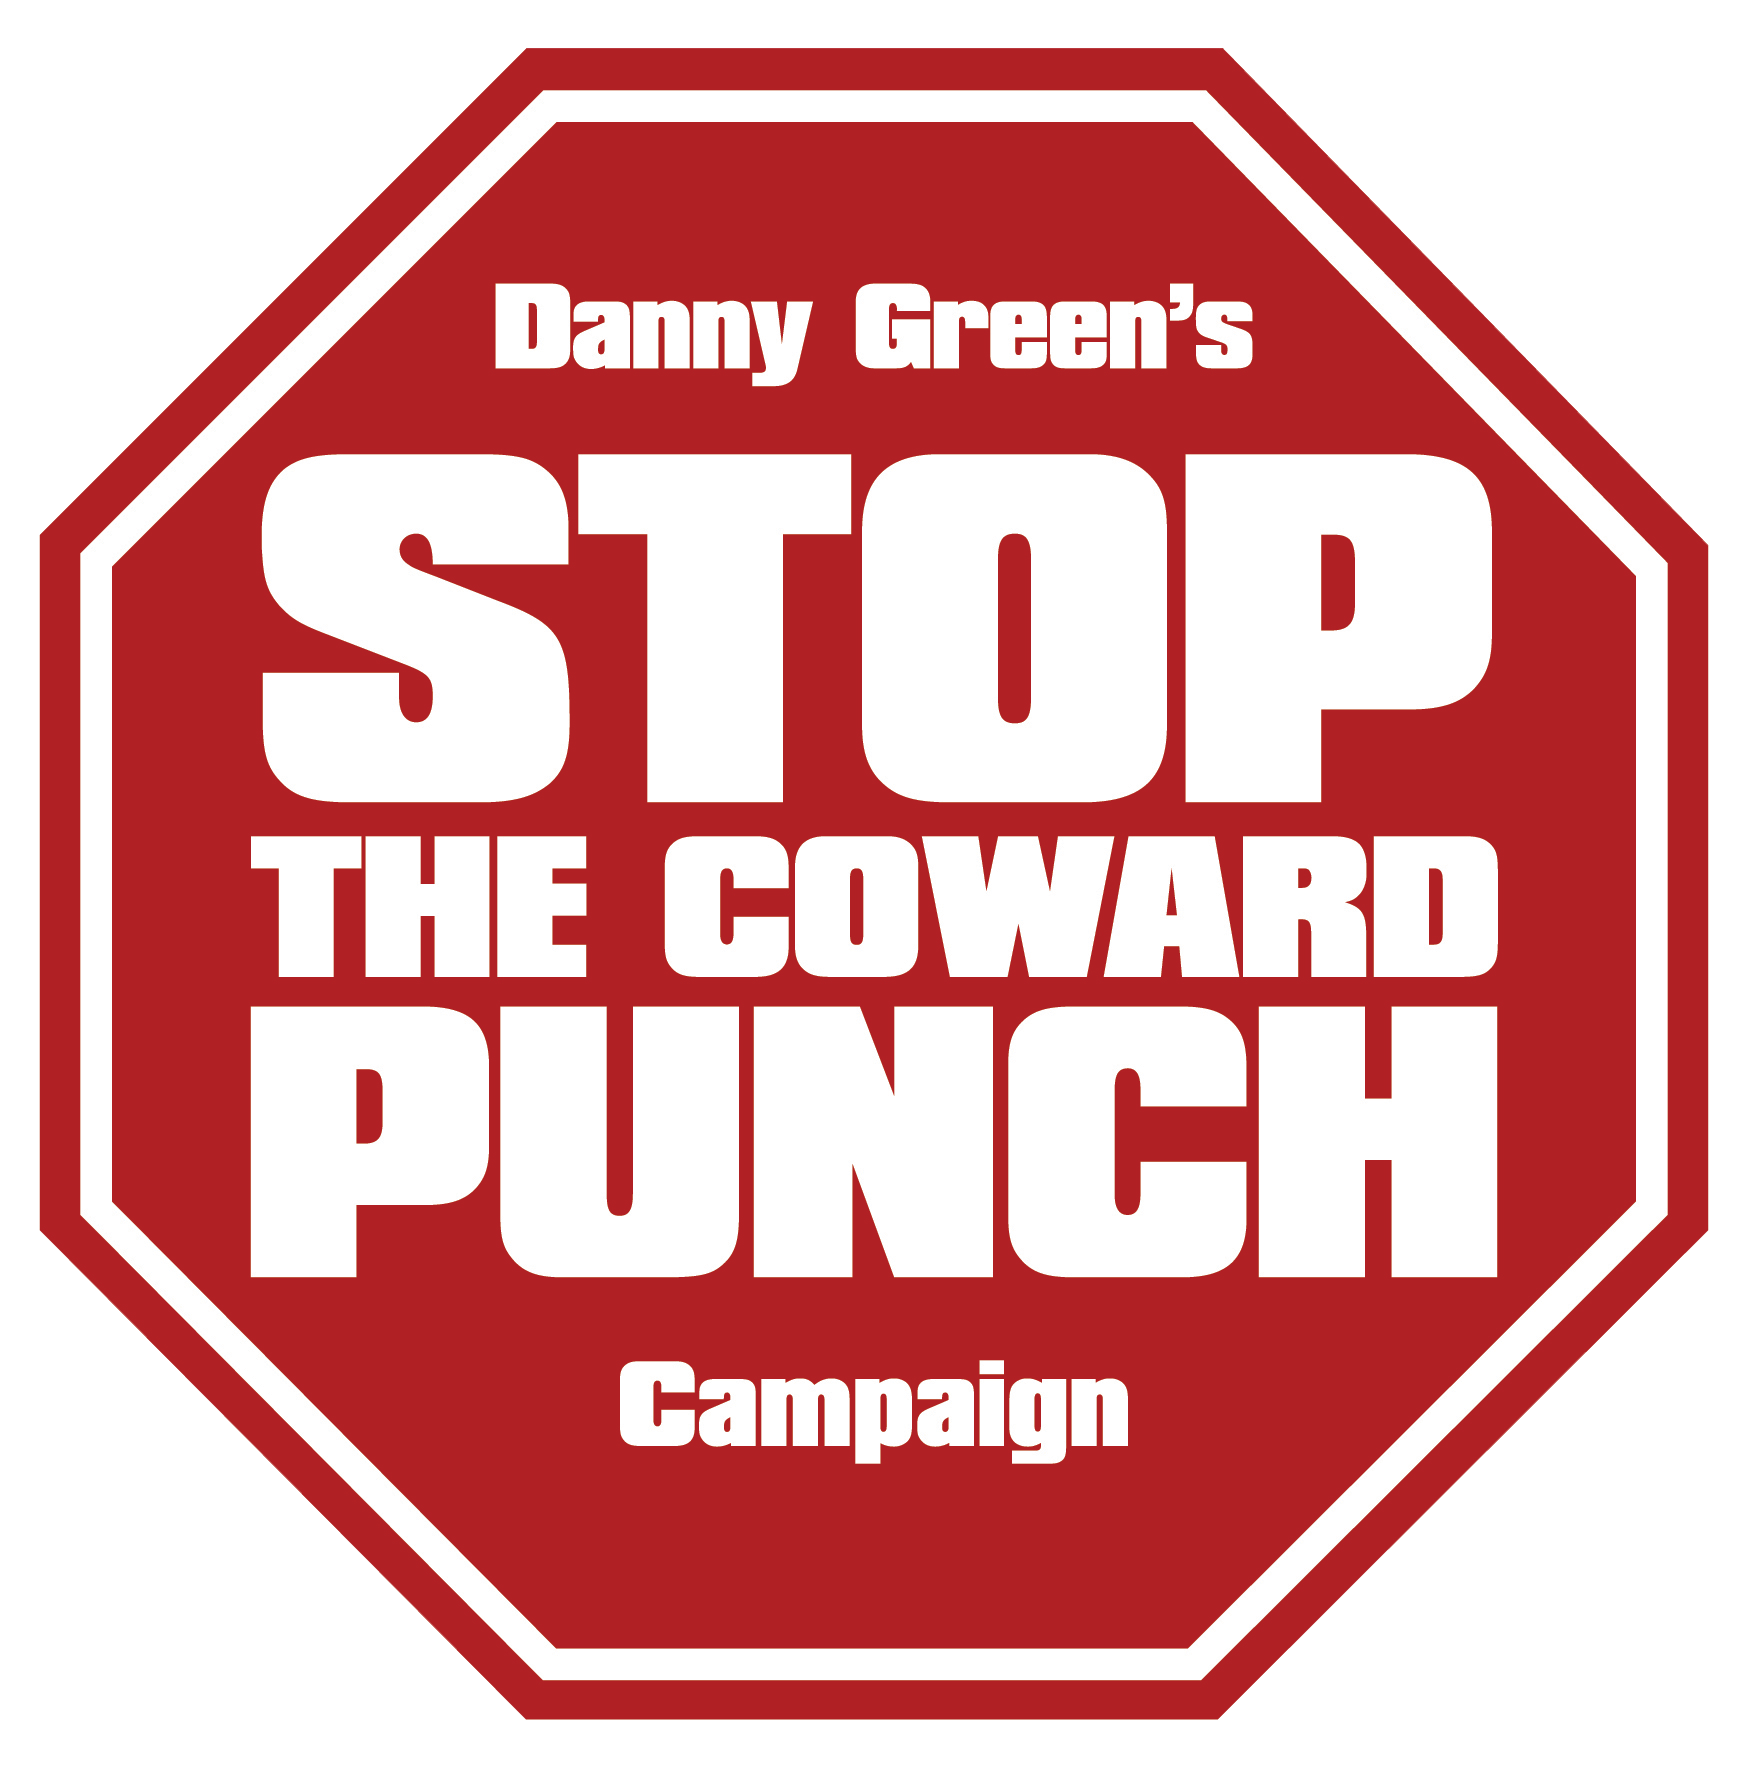 Cowards Punch